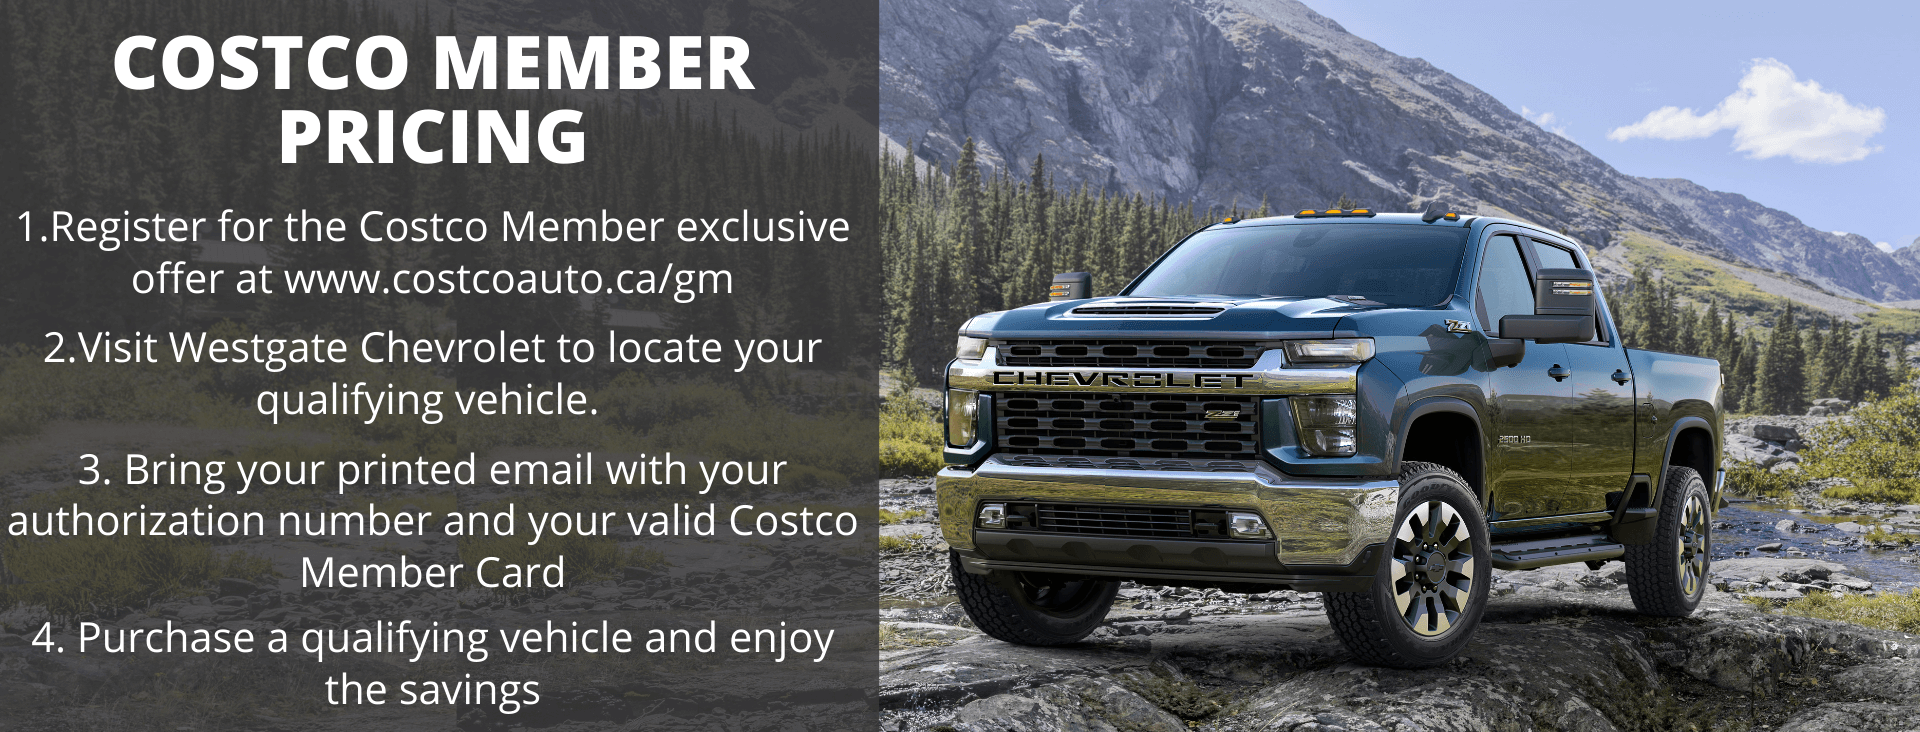 Costco Member Bonus is now available on select 2021 models